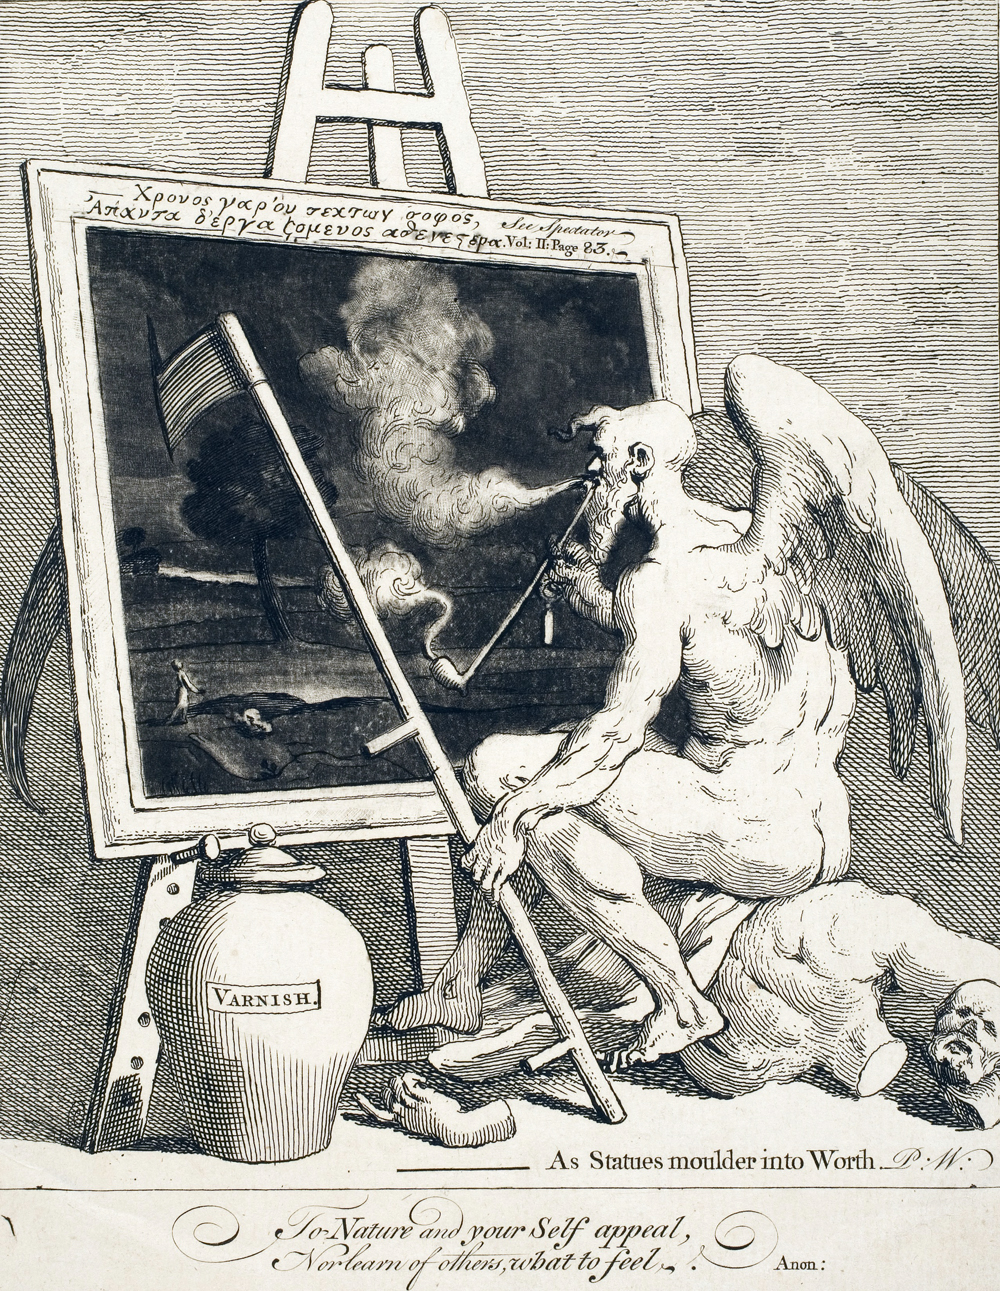 Engraving of Father Time smoking in front of a painting.